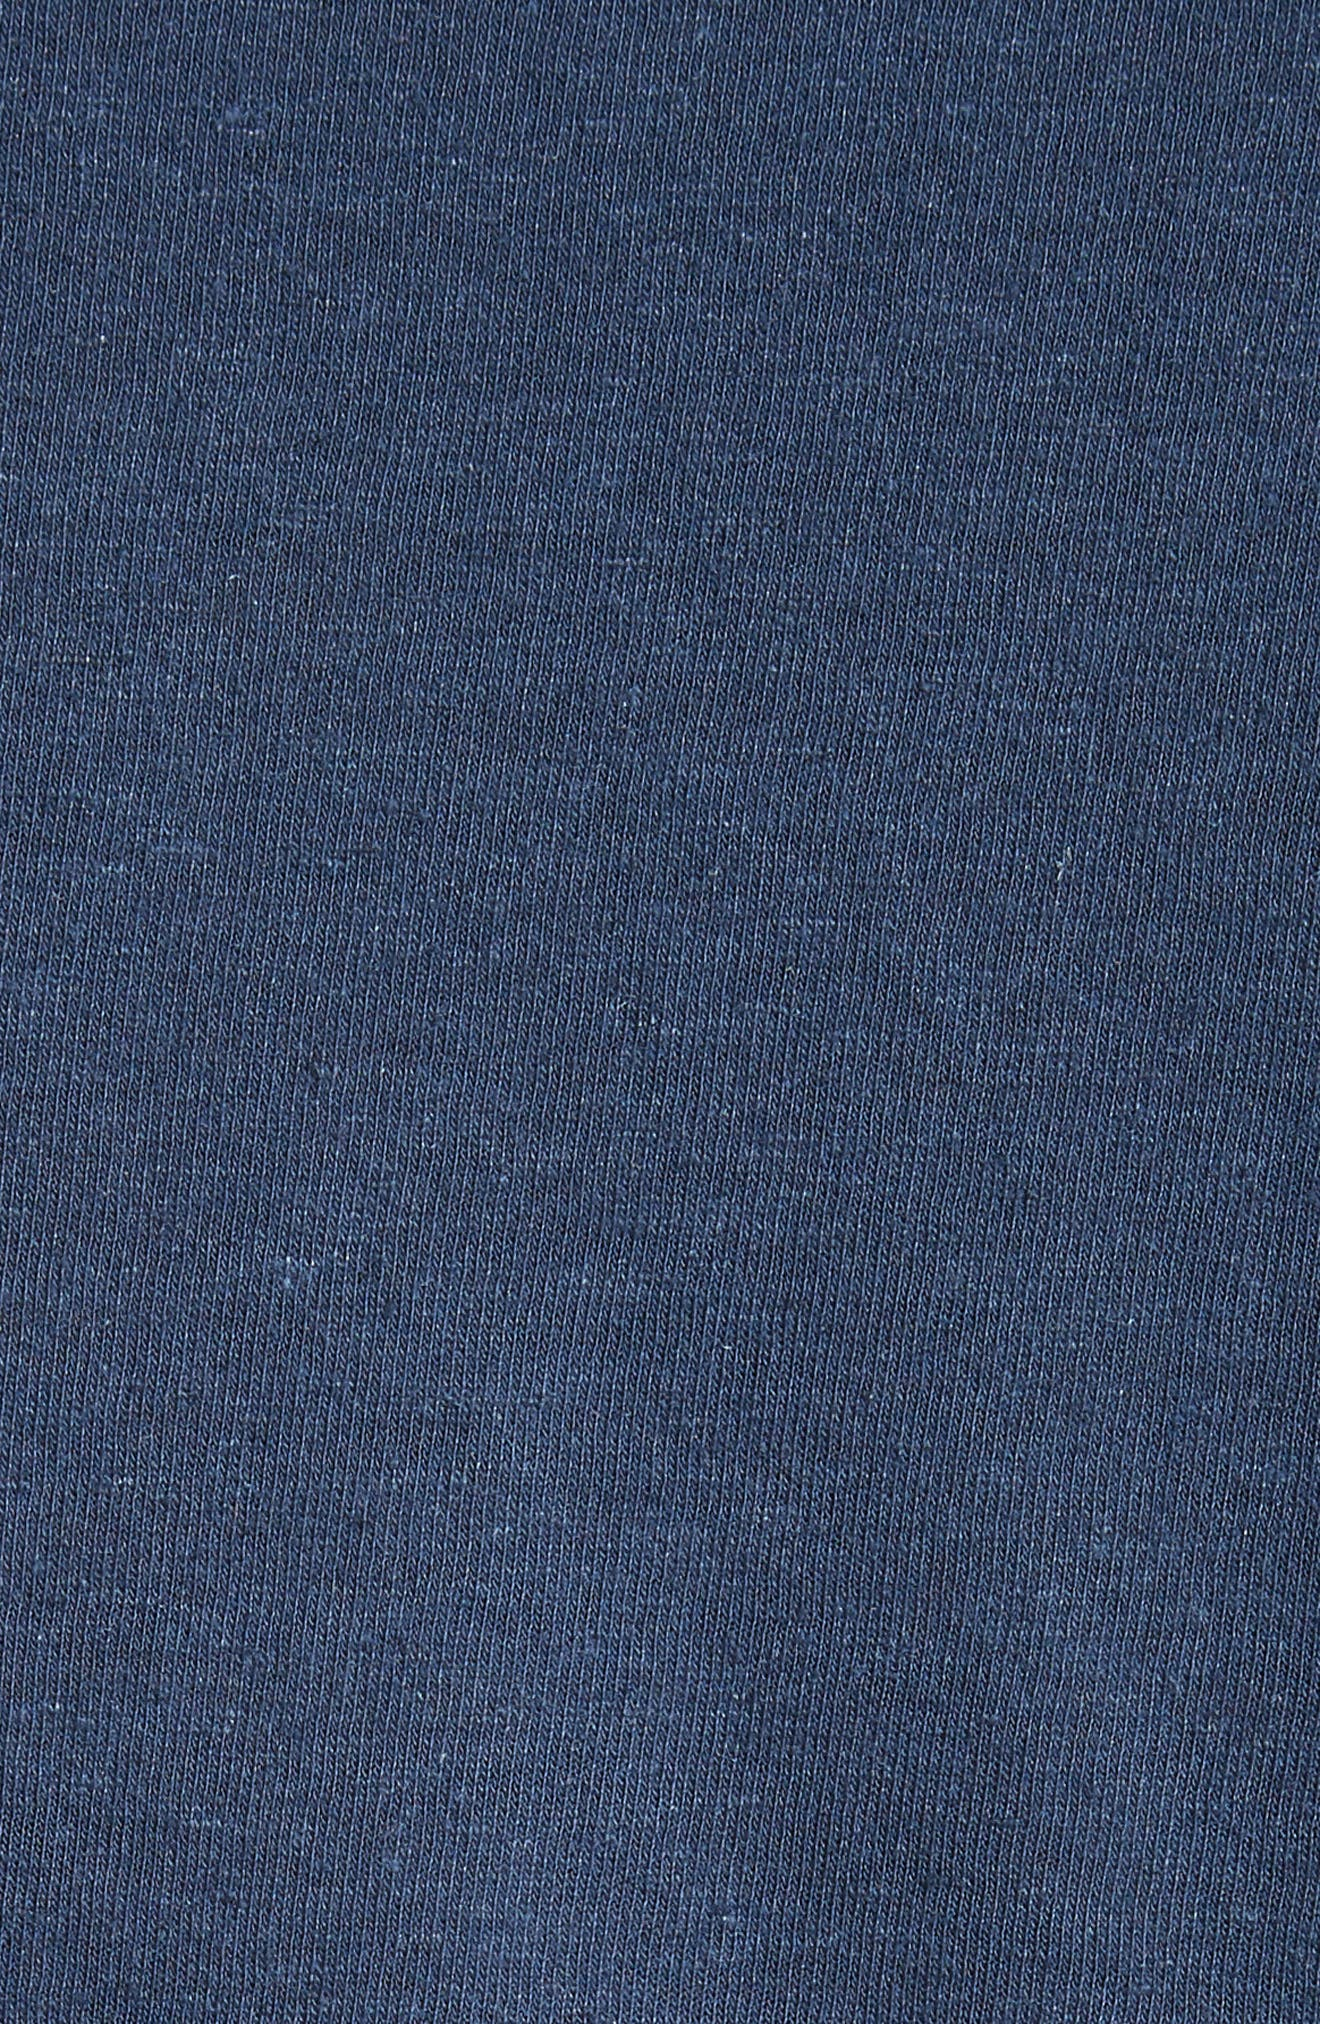 Chad Linen Blend Pocket T-Shirt,                             Alternate thumbnail 5, color,                             DEEP NAVY